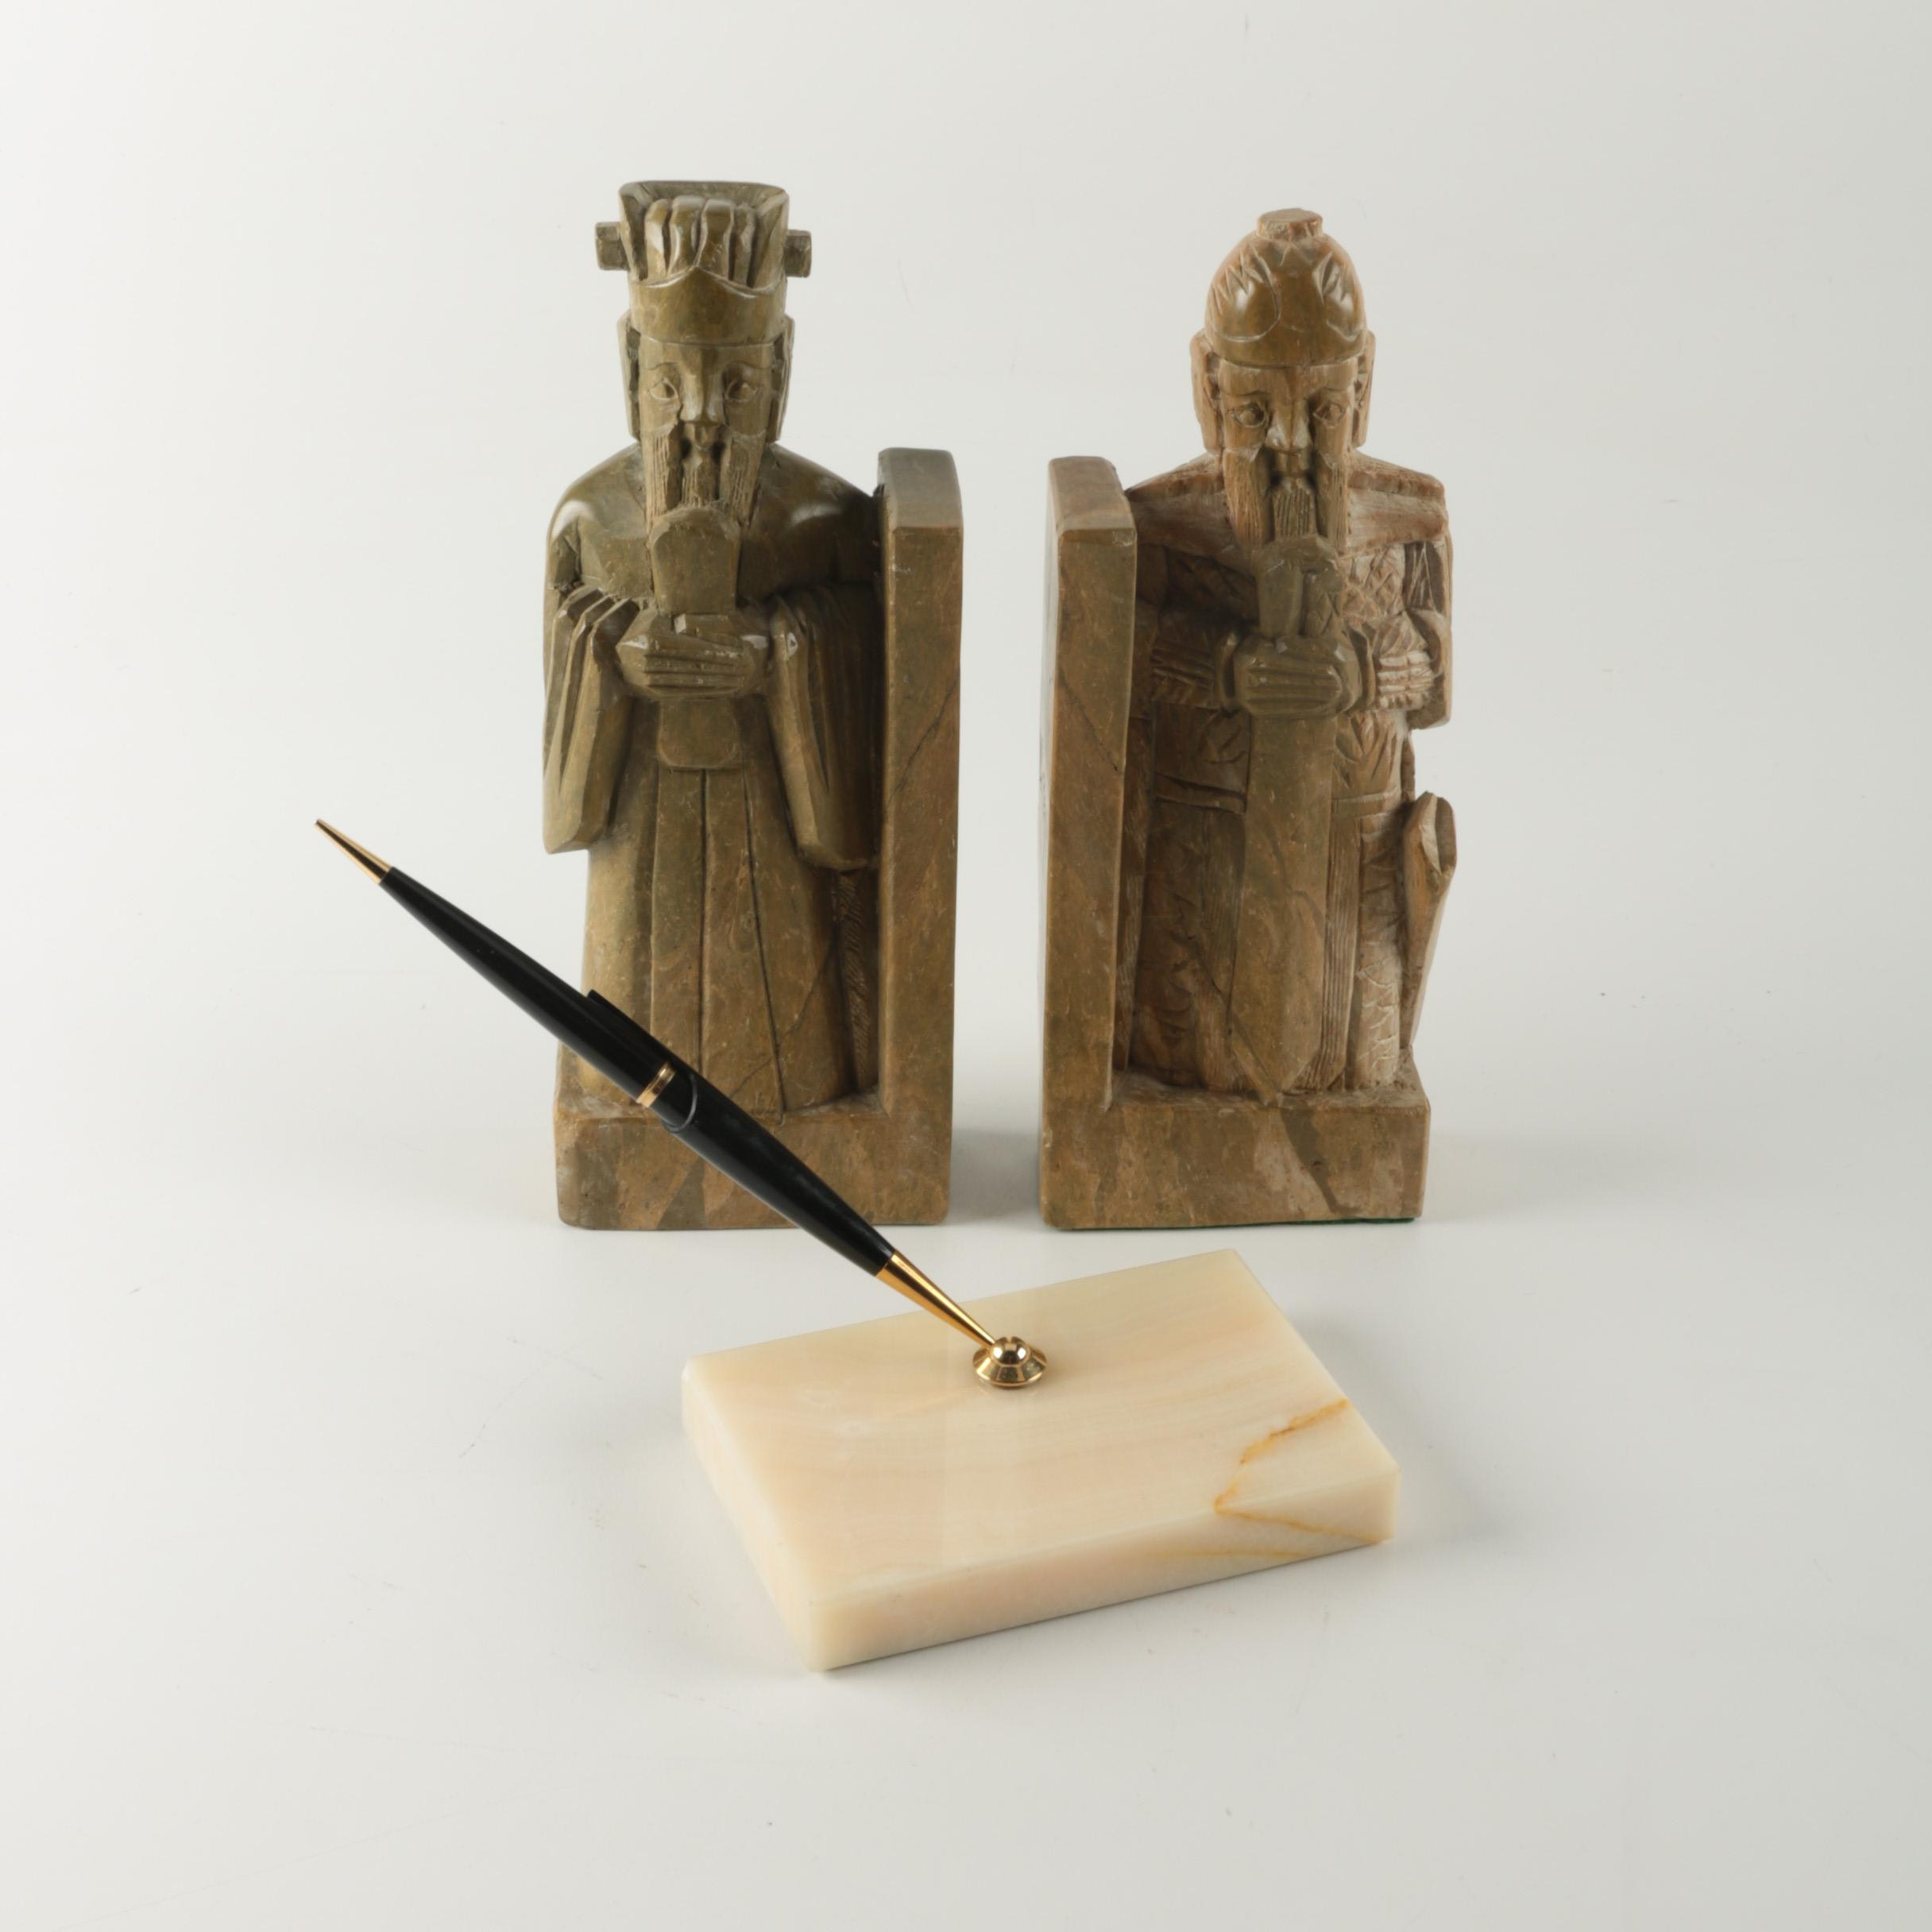 Parker Pen and Agate Pen Holder with Soapstone Bookends